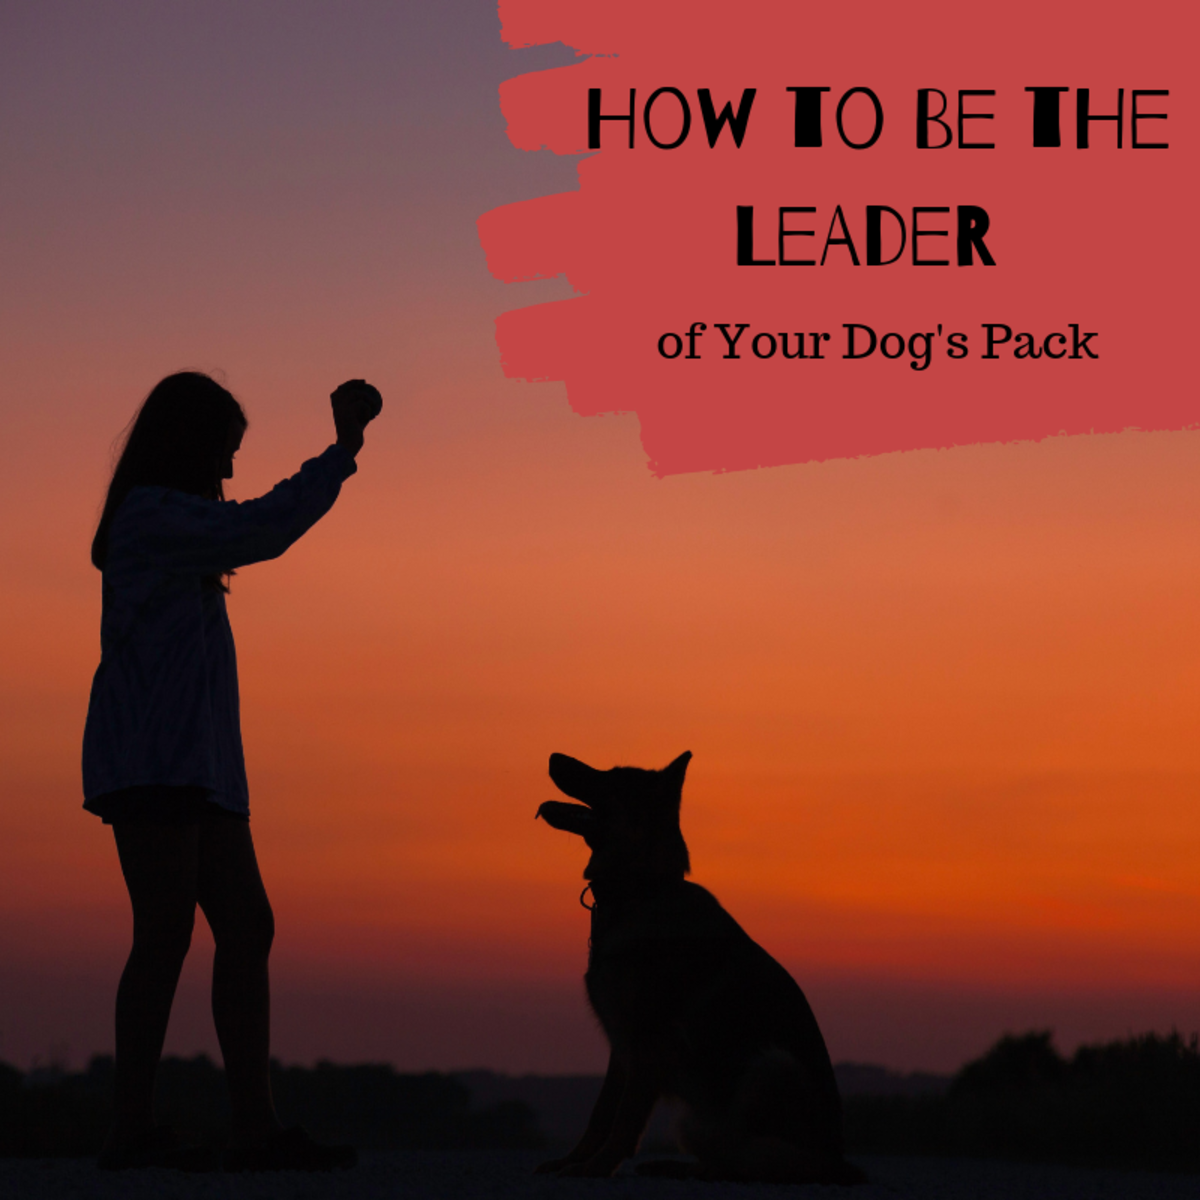 How to Make Your Dog Feel Secure and Happy by Being Leader of the Pack